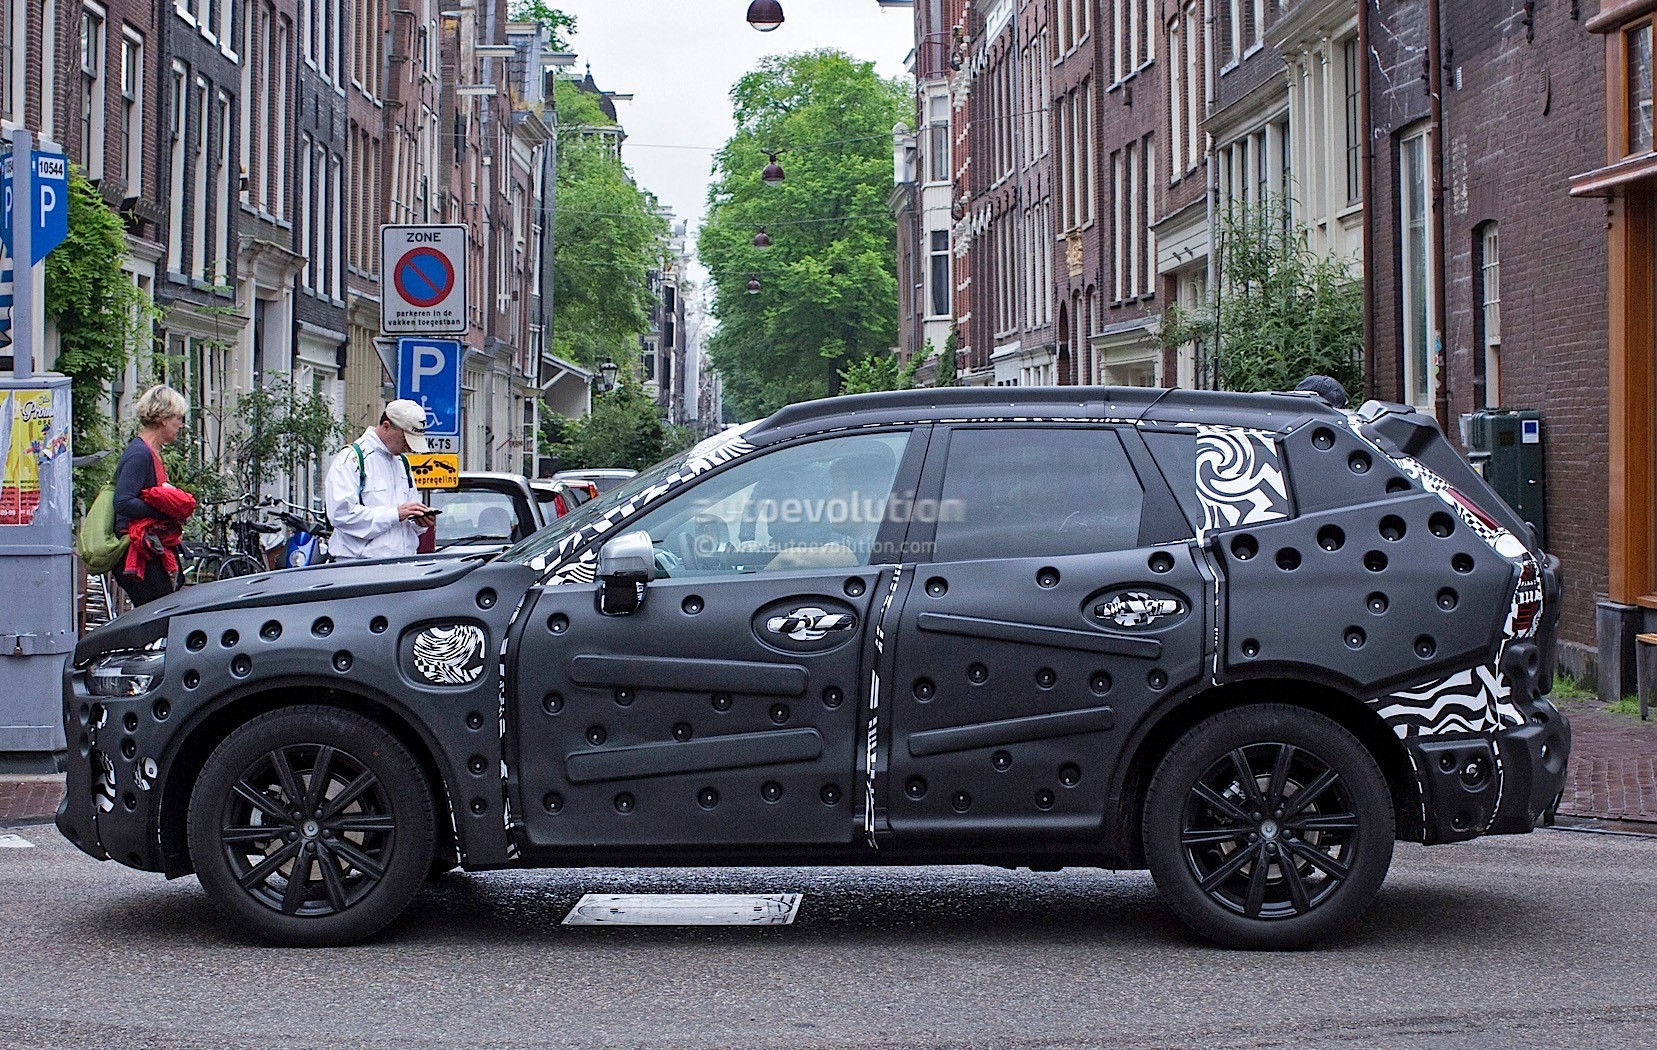 2018-volvo-xc60-spied-for-the-first-time-in-amsterdam_7